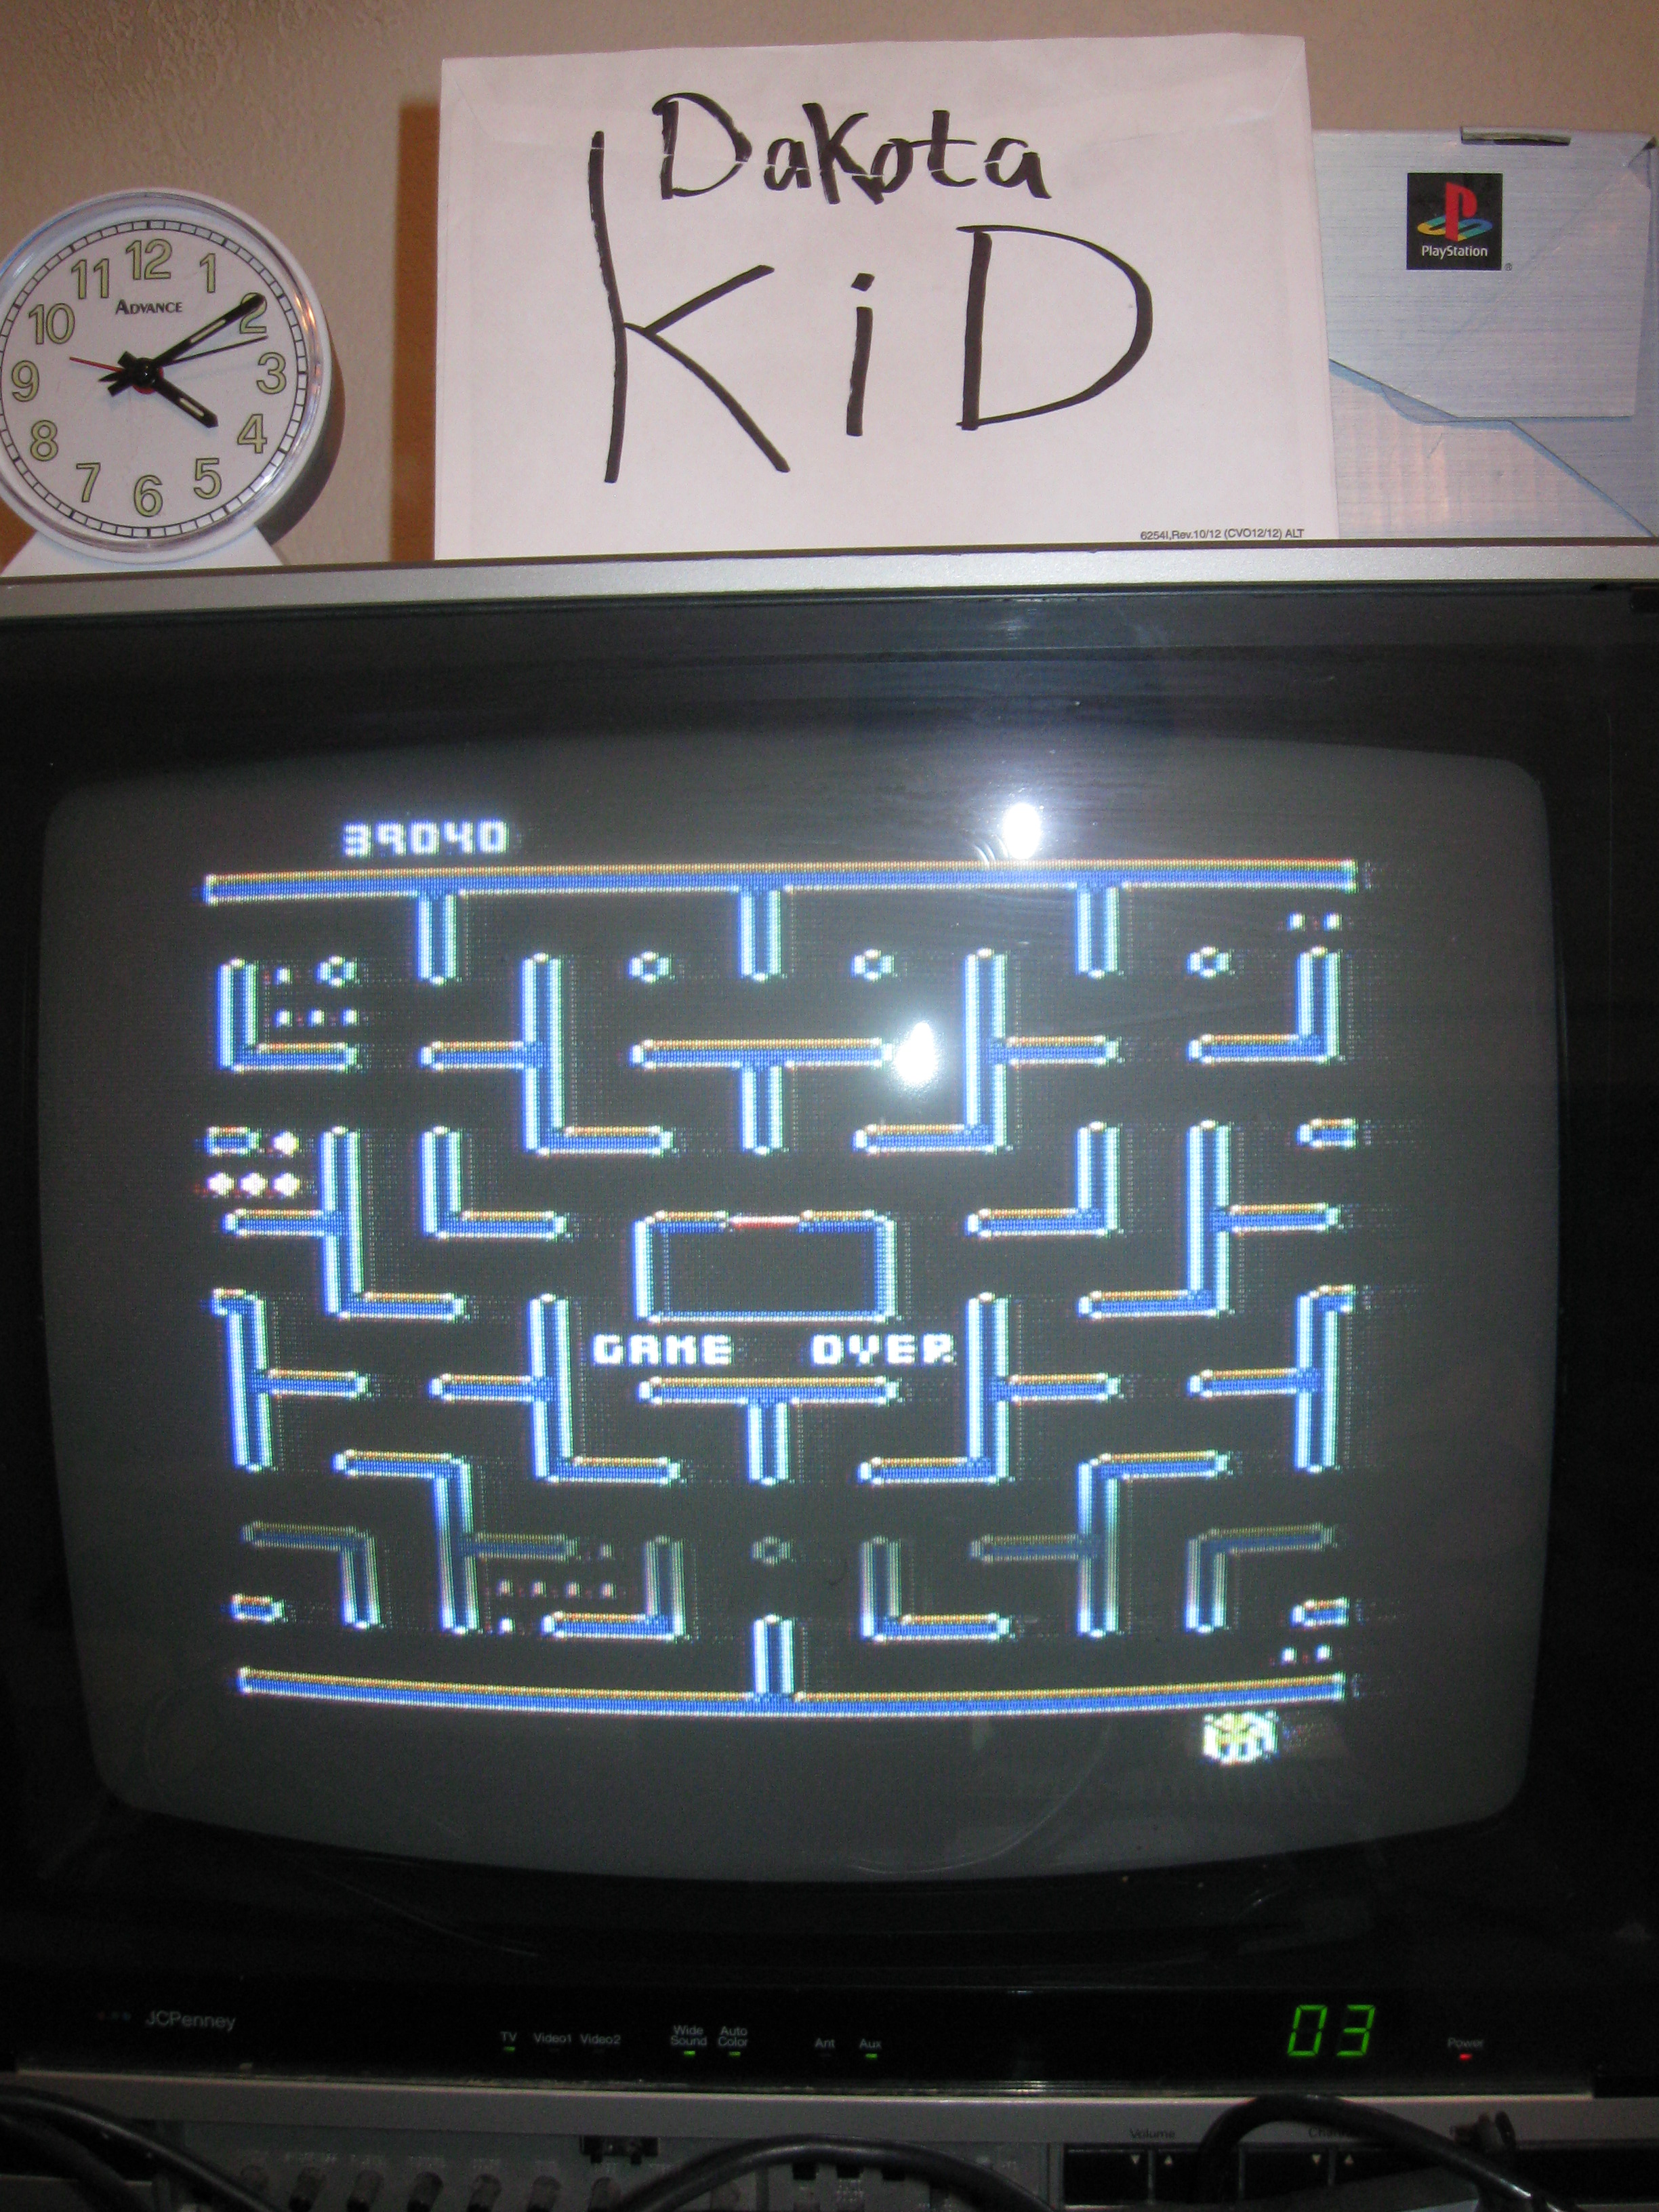 DakotaKid: Jr. Pac-Man (Atari 5200) 39,040 points on 2016-04-13 19:09:33